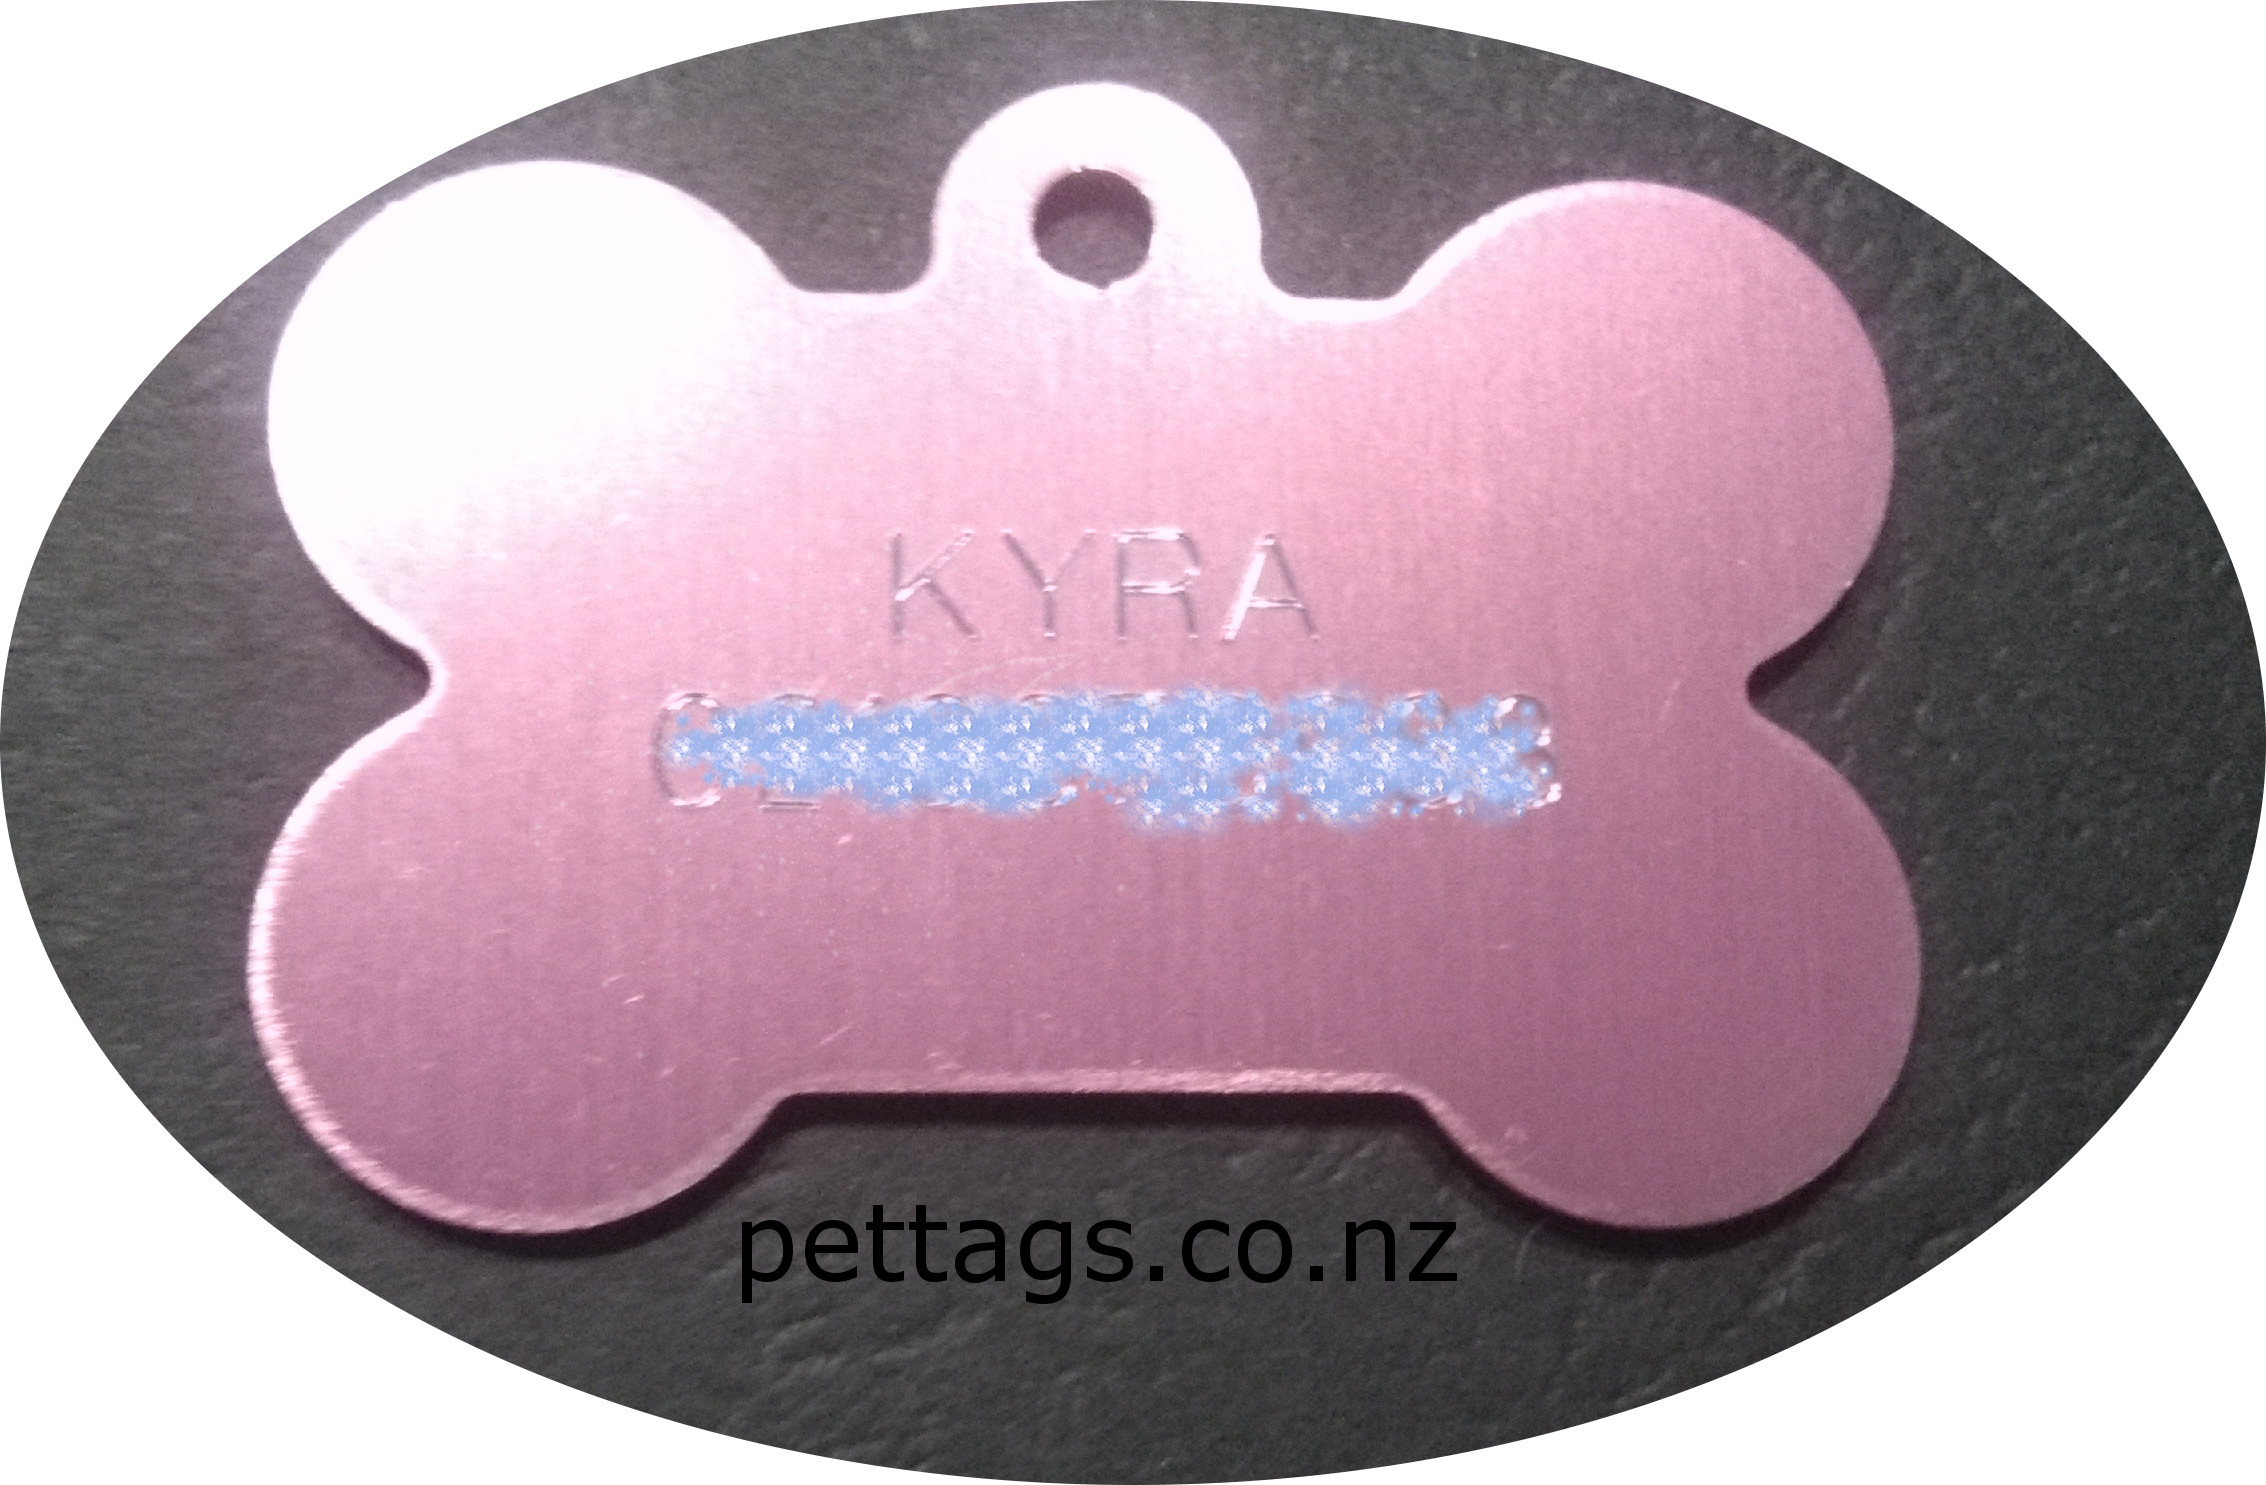 engraved pet tag in bone shape